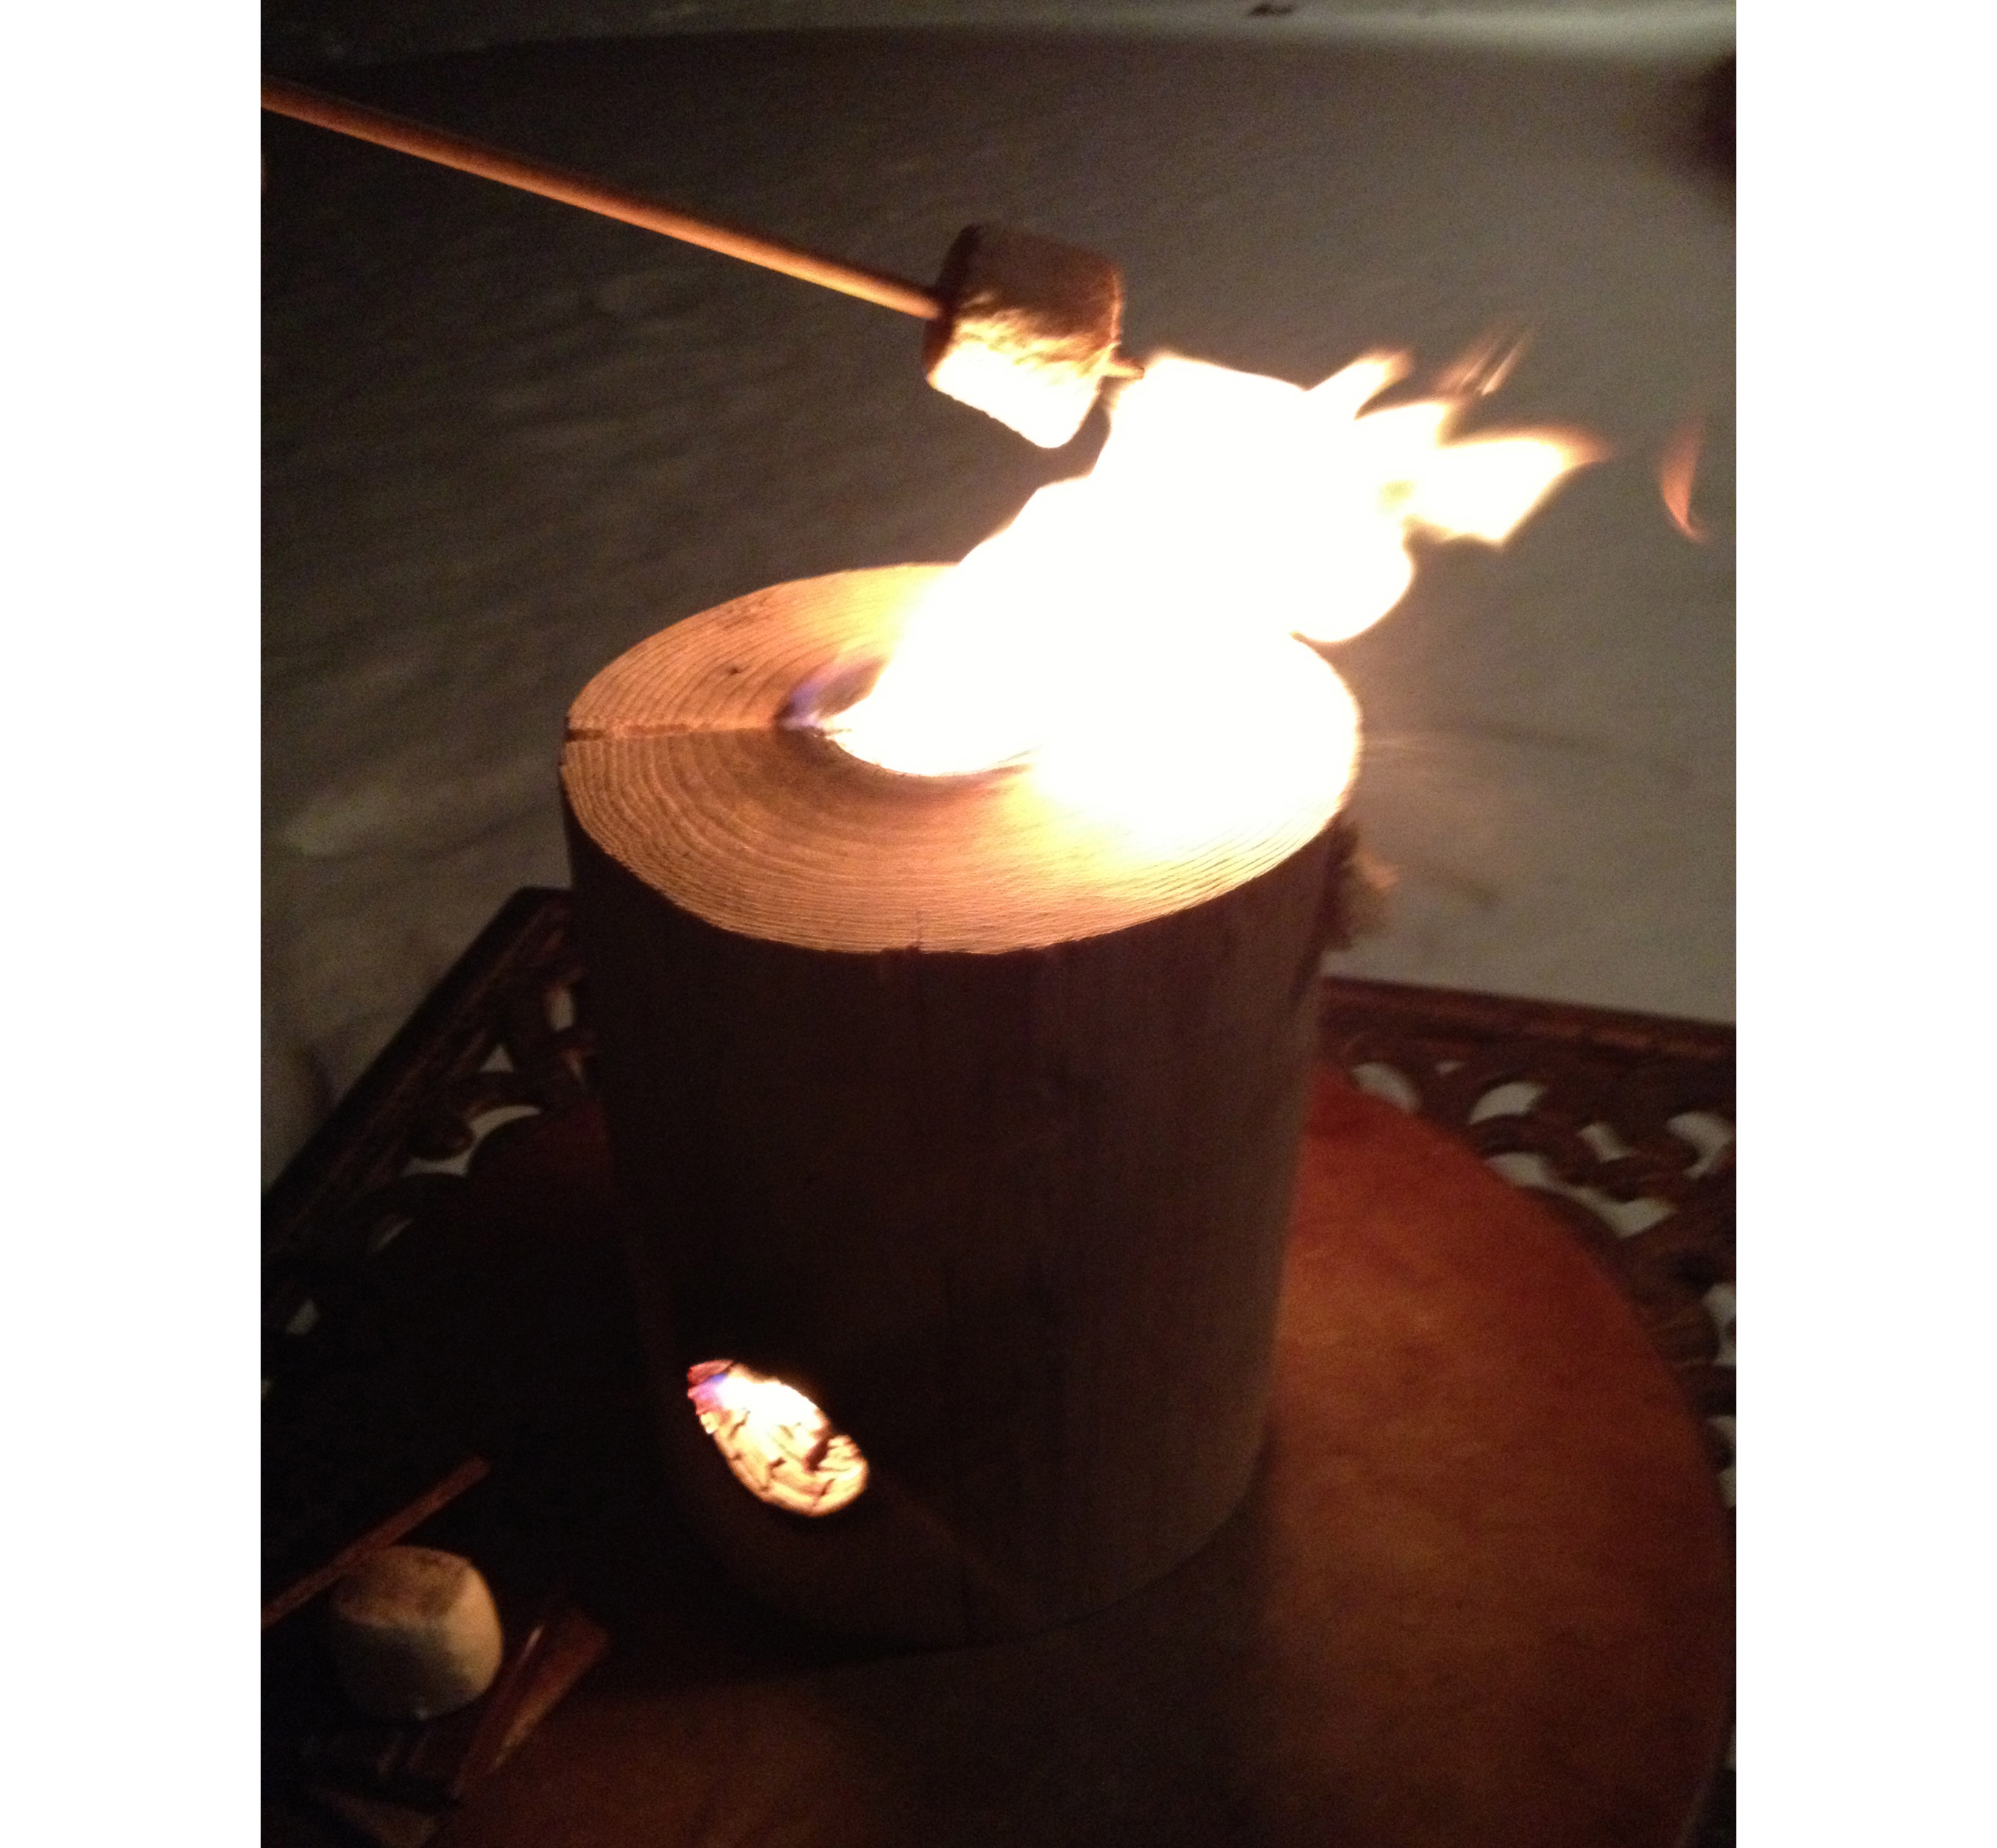 ONE LOG FIRE STICKS IN ACTION